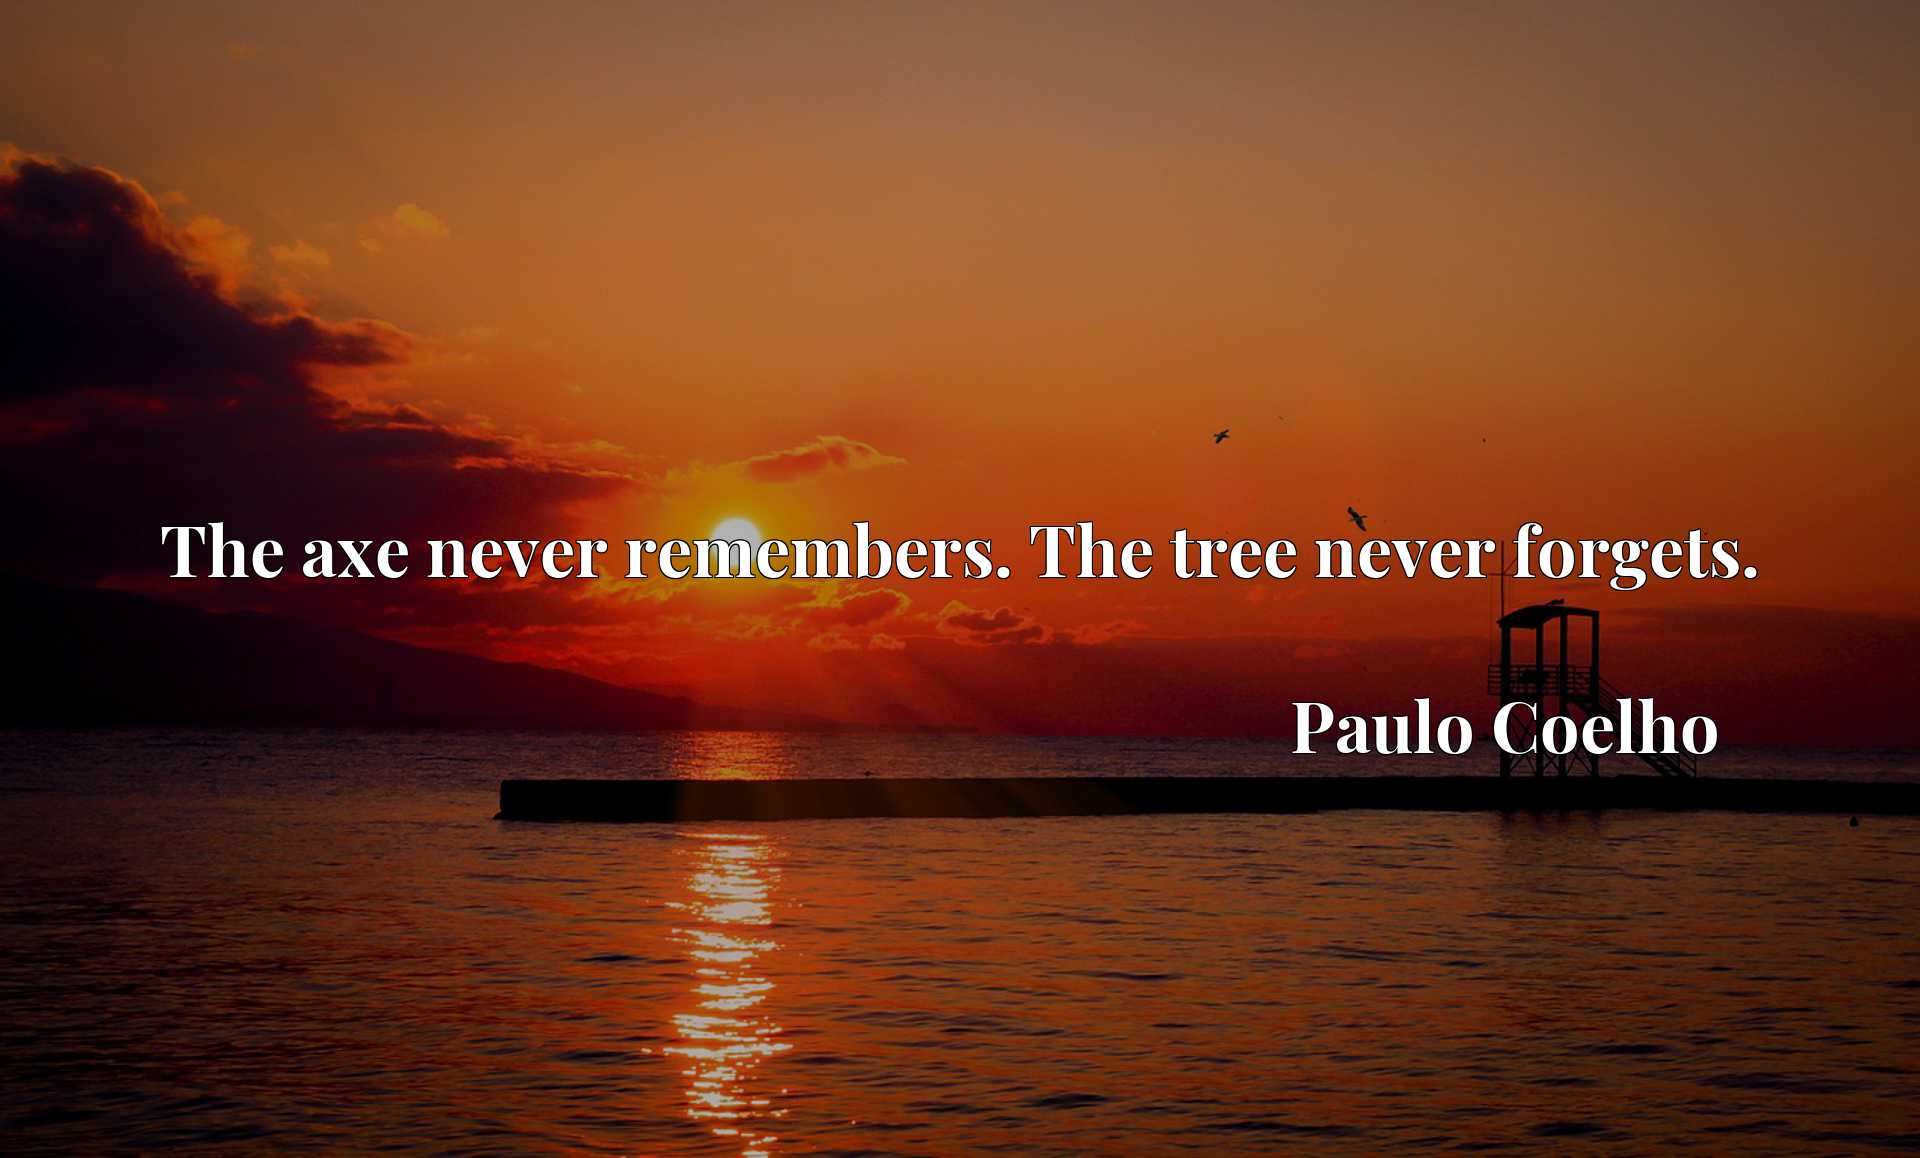 The axe never remembers. The tree never forgets.